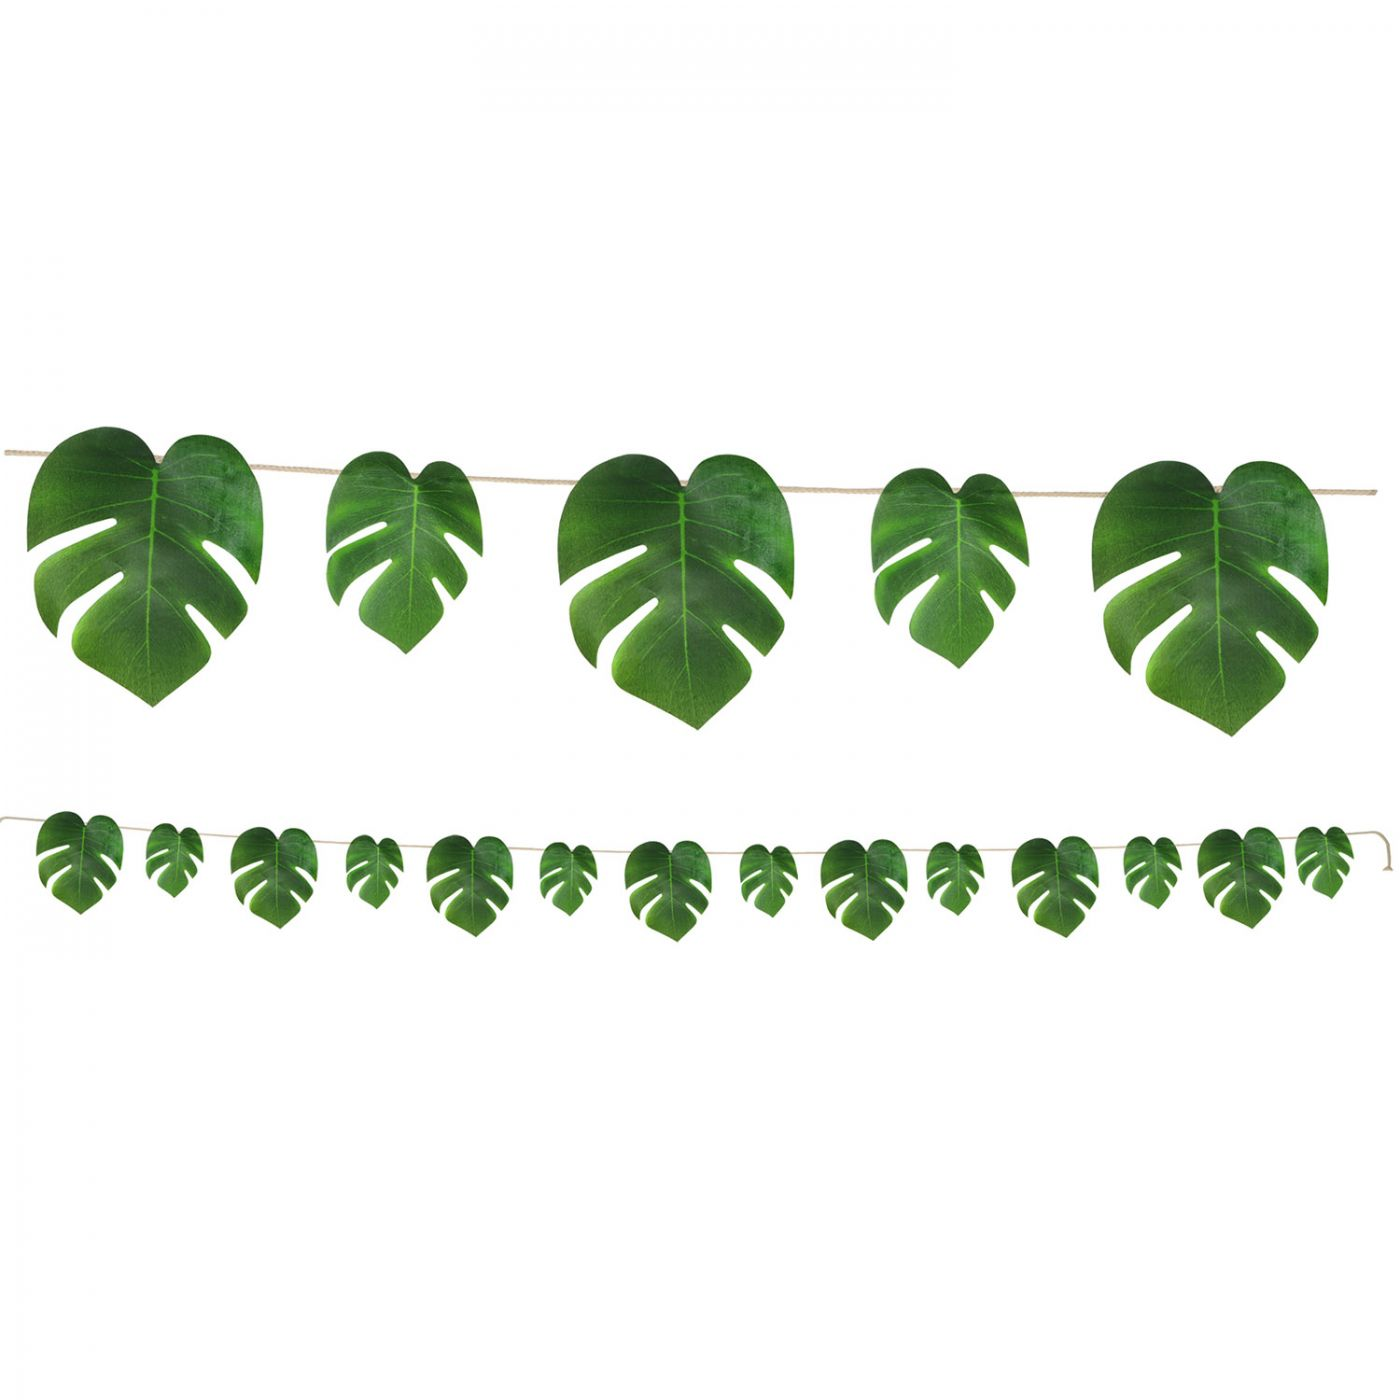 Tropical Palm Leaves Streamer image